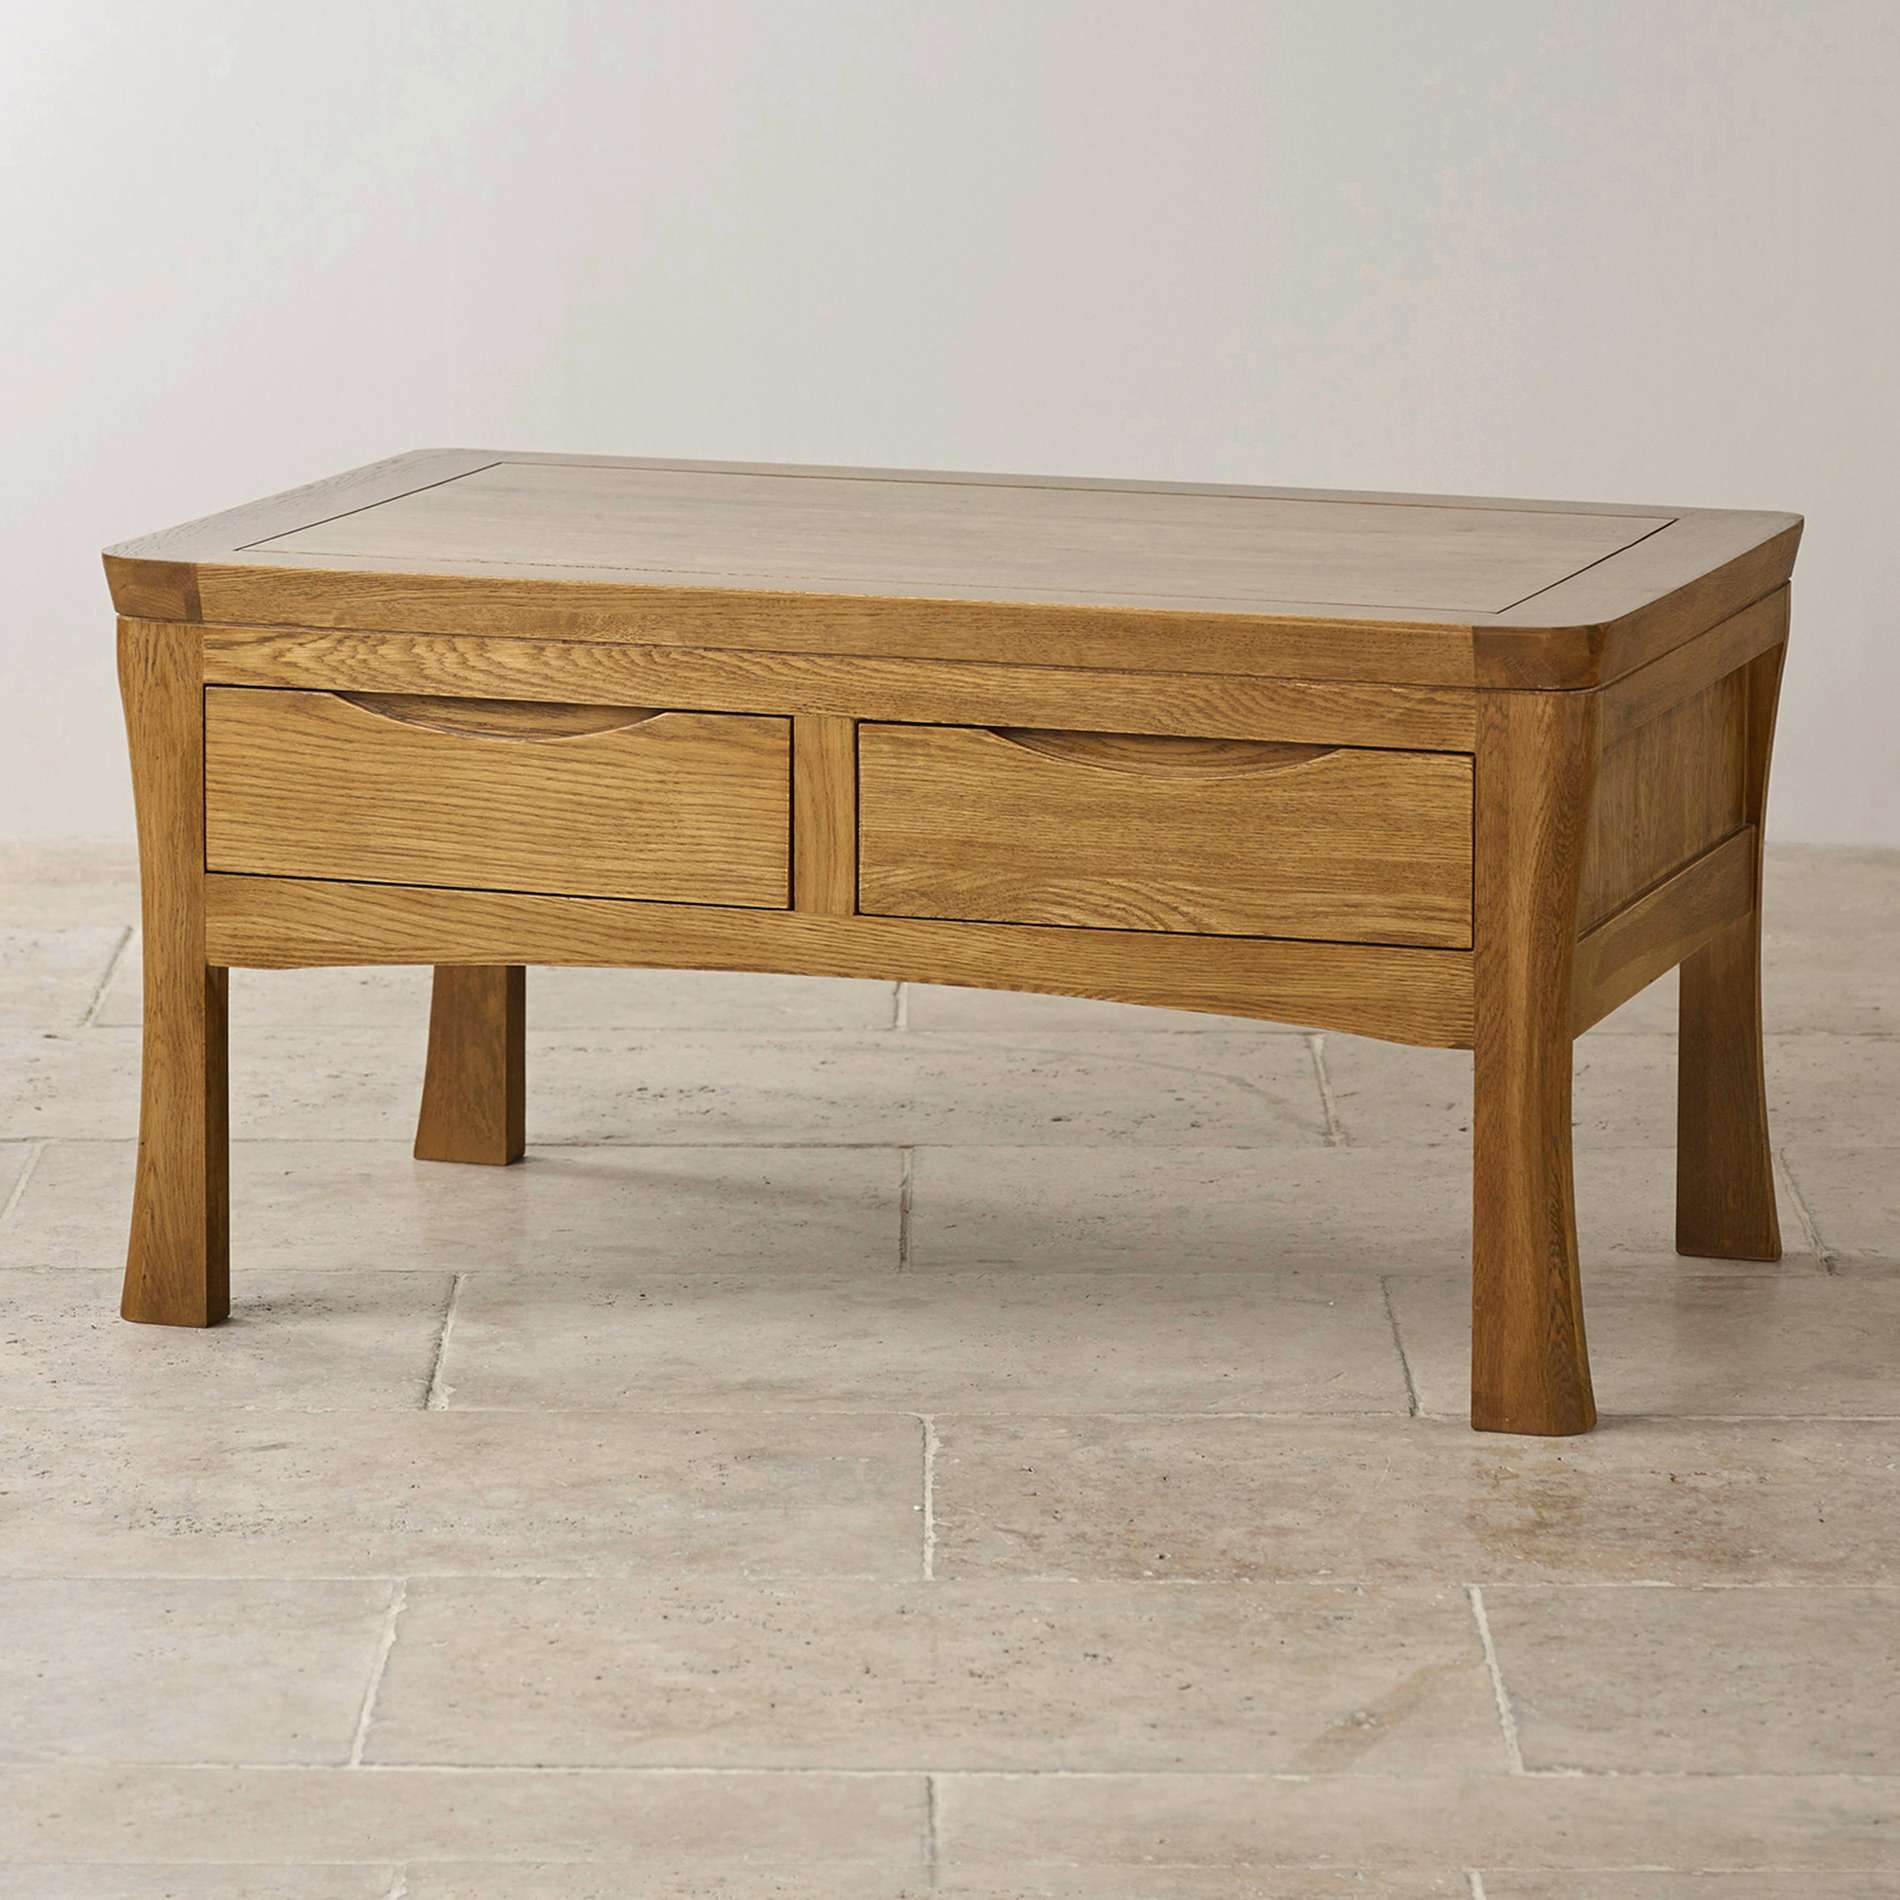 Coffee Tables : Solid Wood Coffee Table With Drawers And Shelf Oak Throughout Well Known Oak Wood Coffee Tables (View 4 of 20)